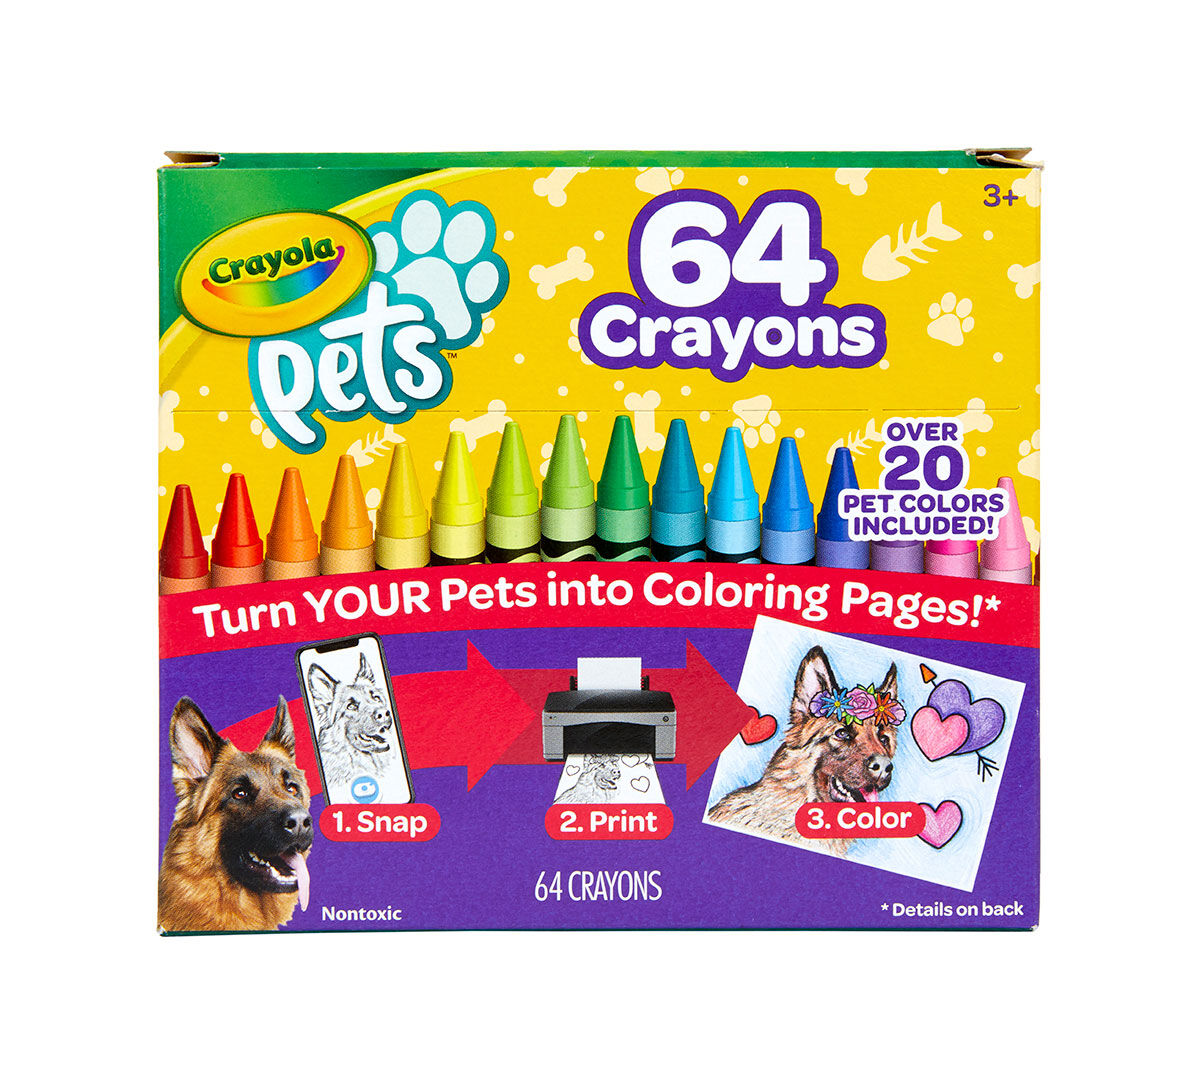 Neon Glitter Classic Crayons Coloring Book Construction Paper Doodle Pad Gift Set Birthday Christmas School Break Lots of Creativity for Little Ones Crayola Kids Coloring Art Kit